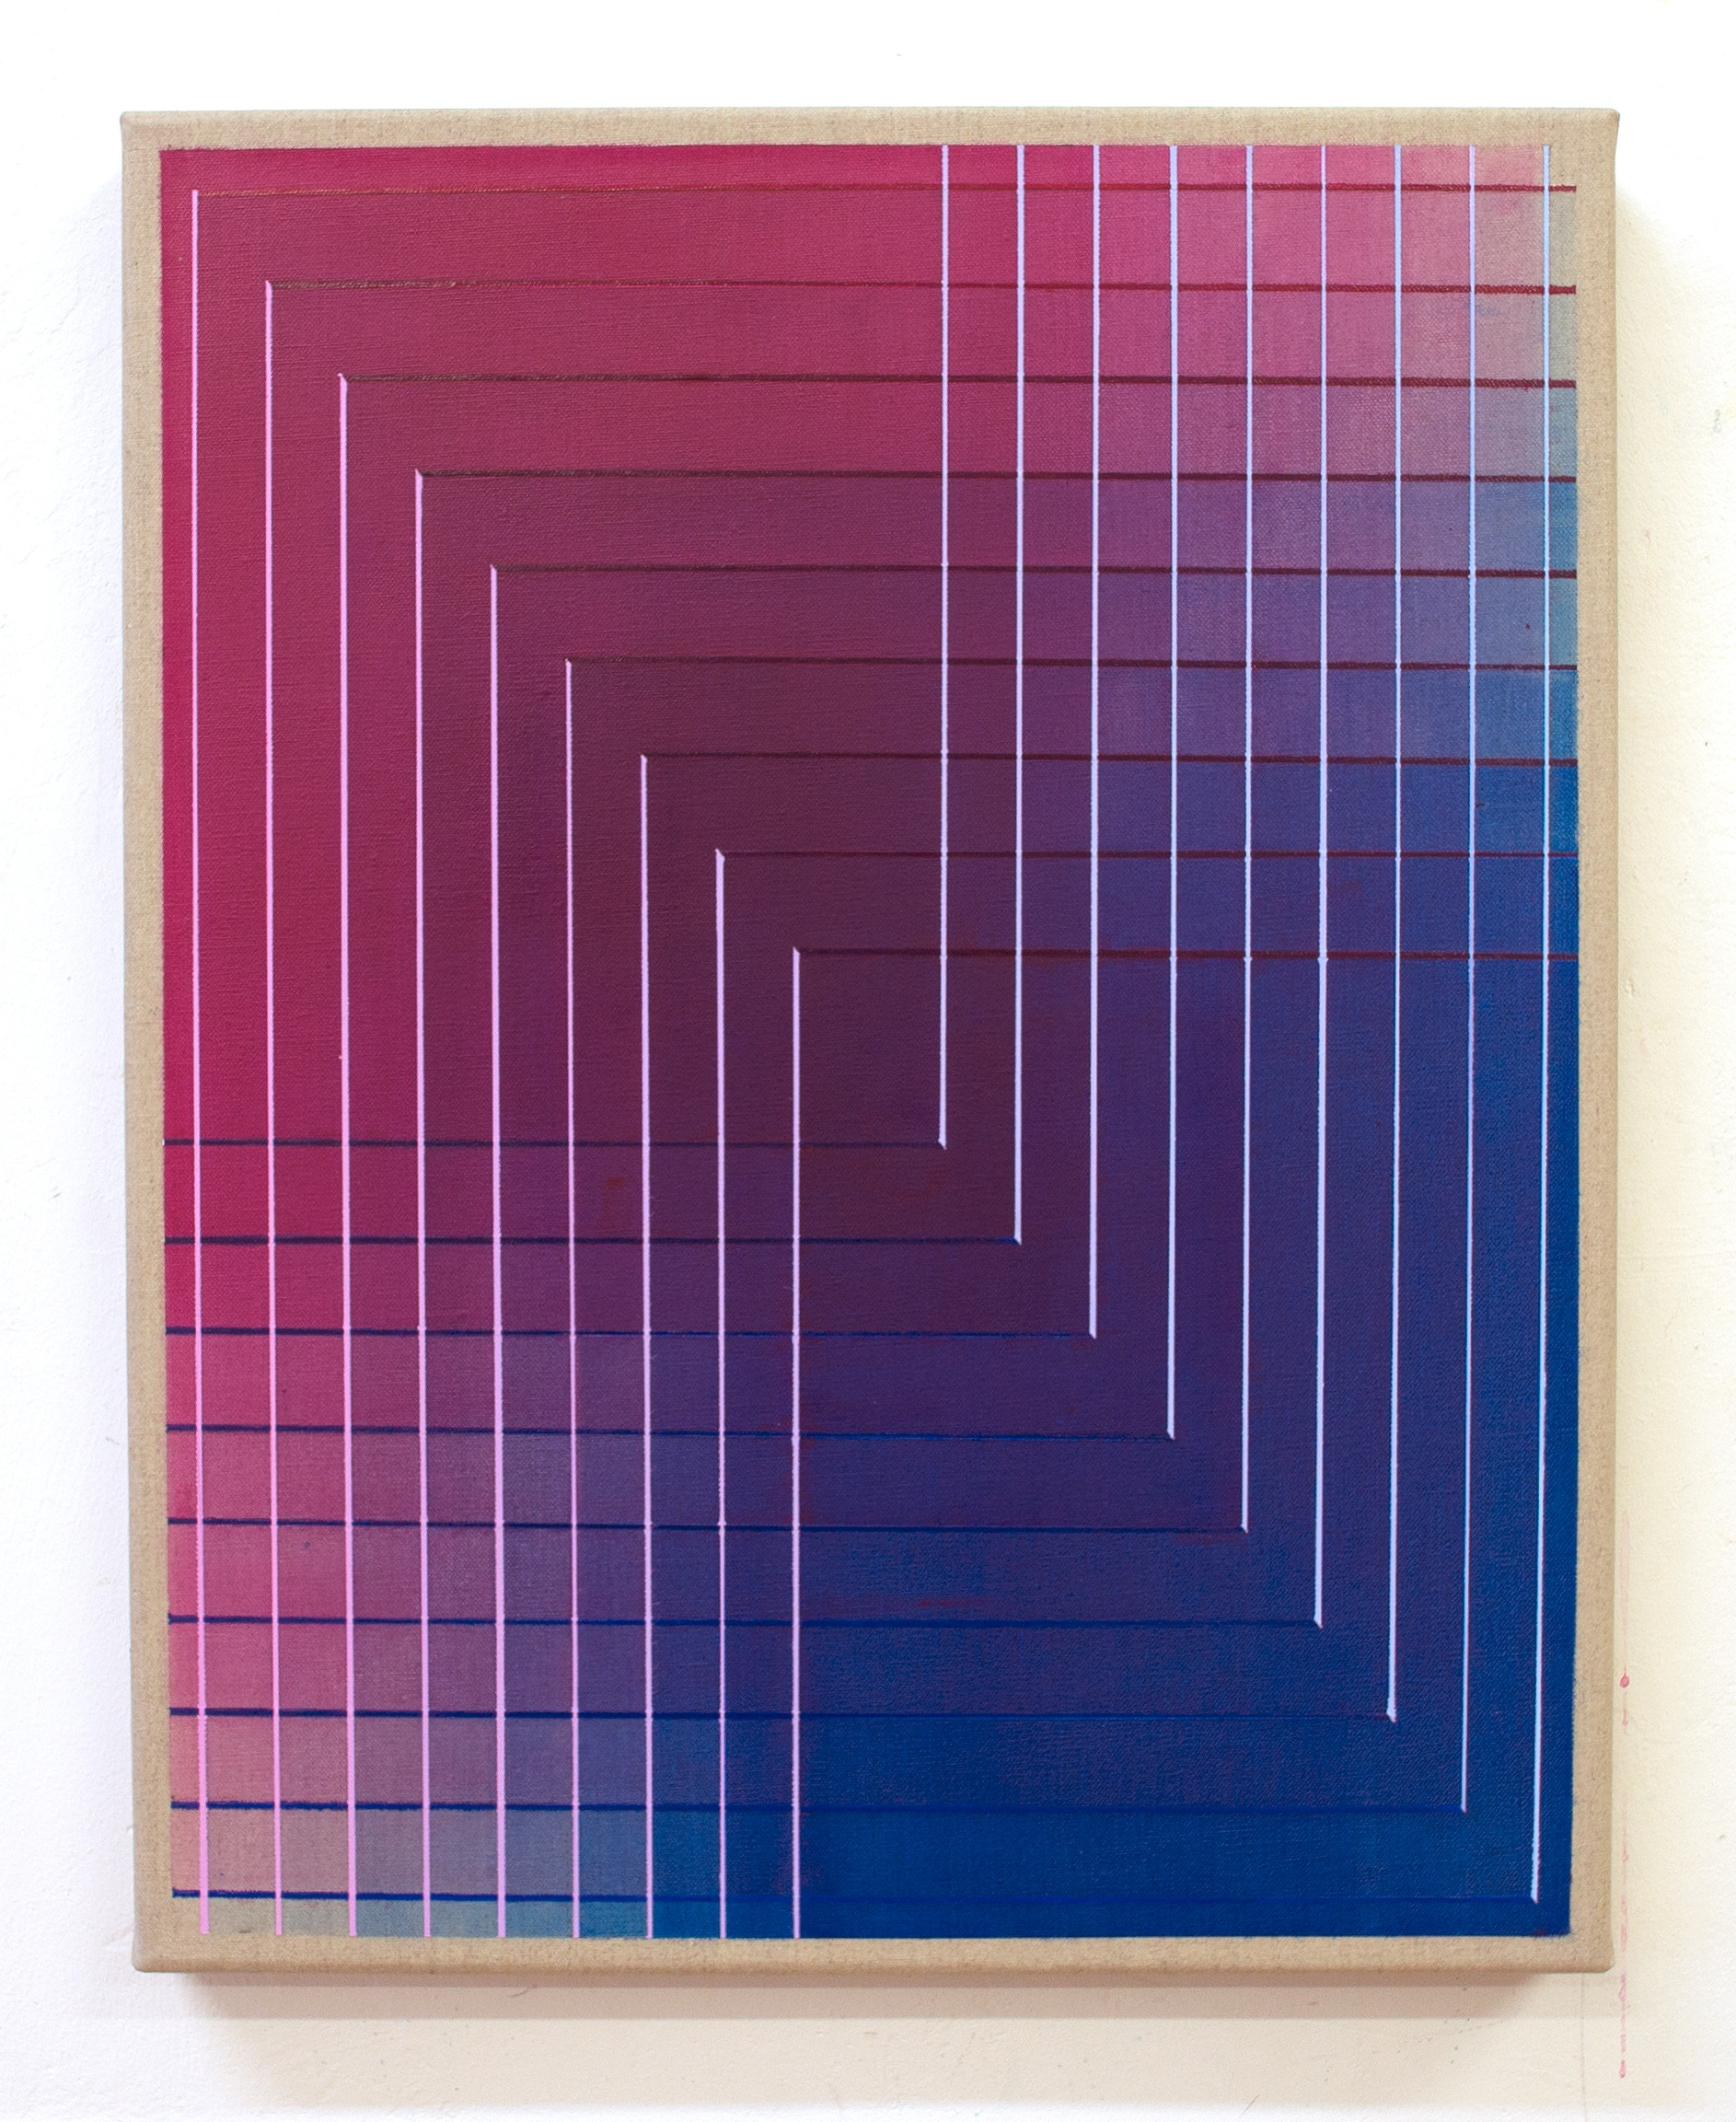 Interaction No.4 50x40cm, 2018 Acrylic on canvas